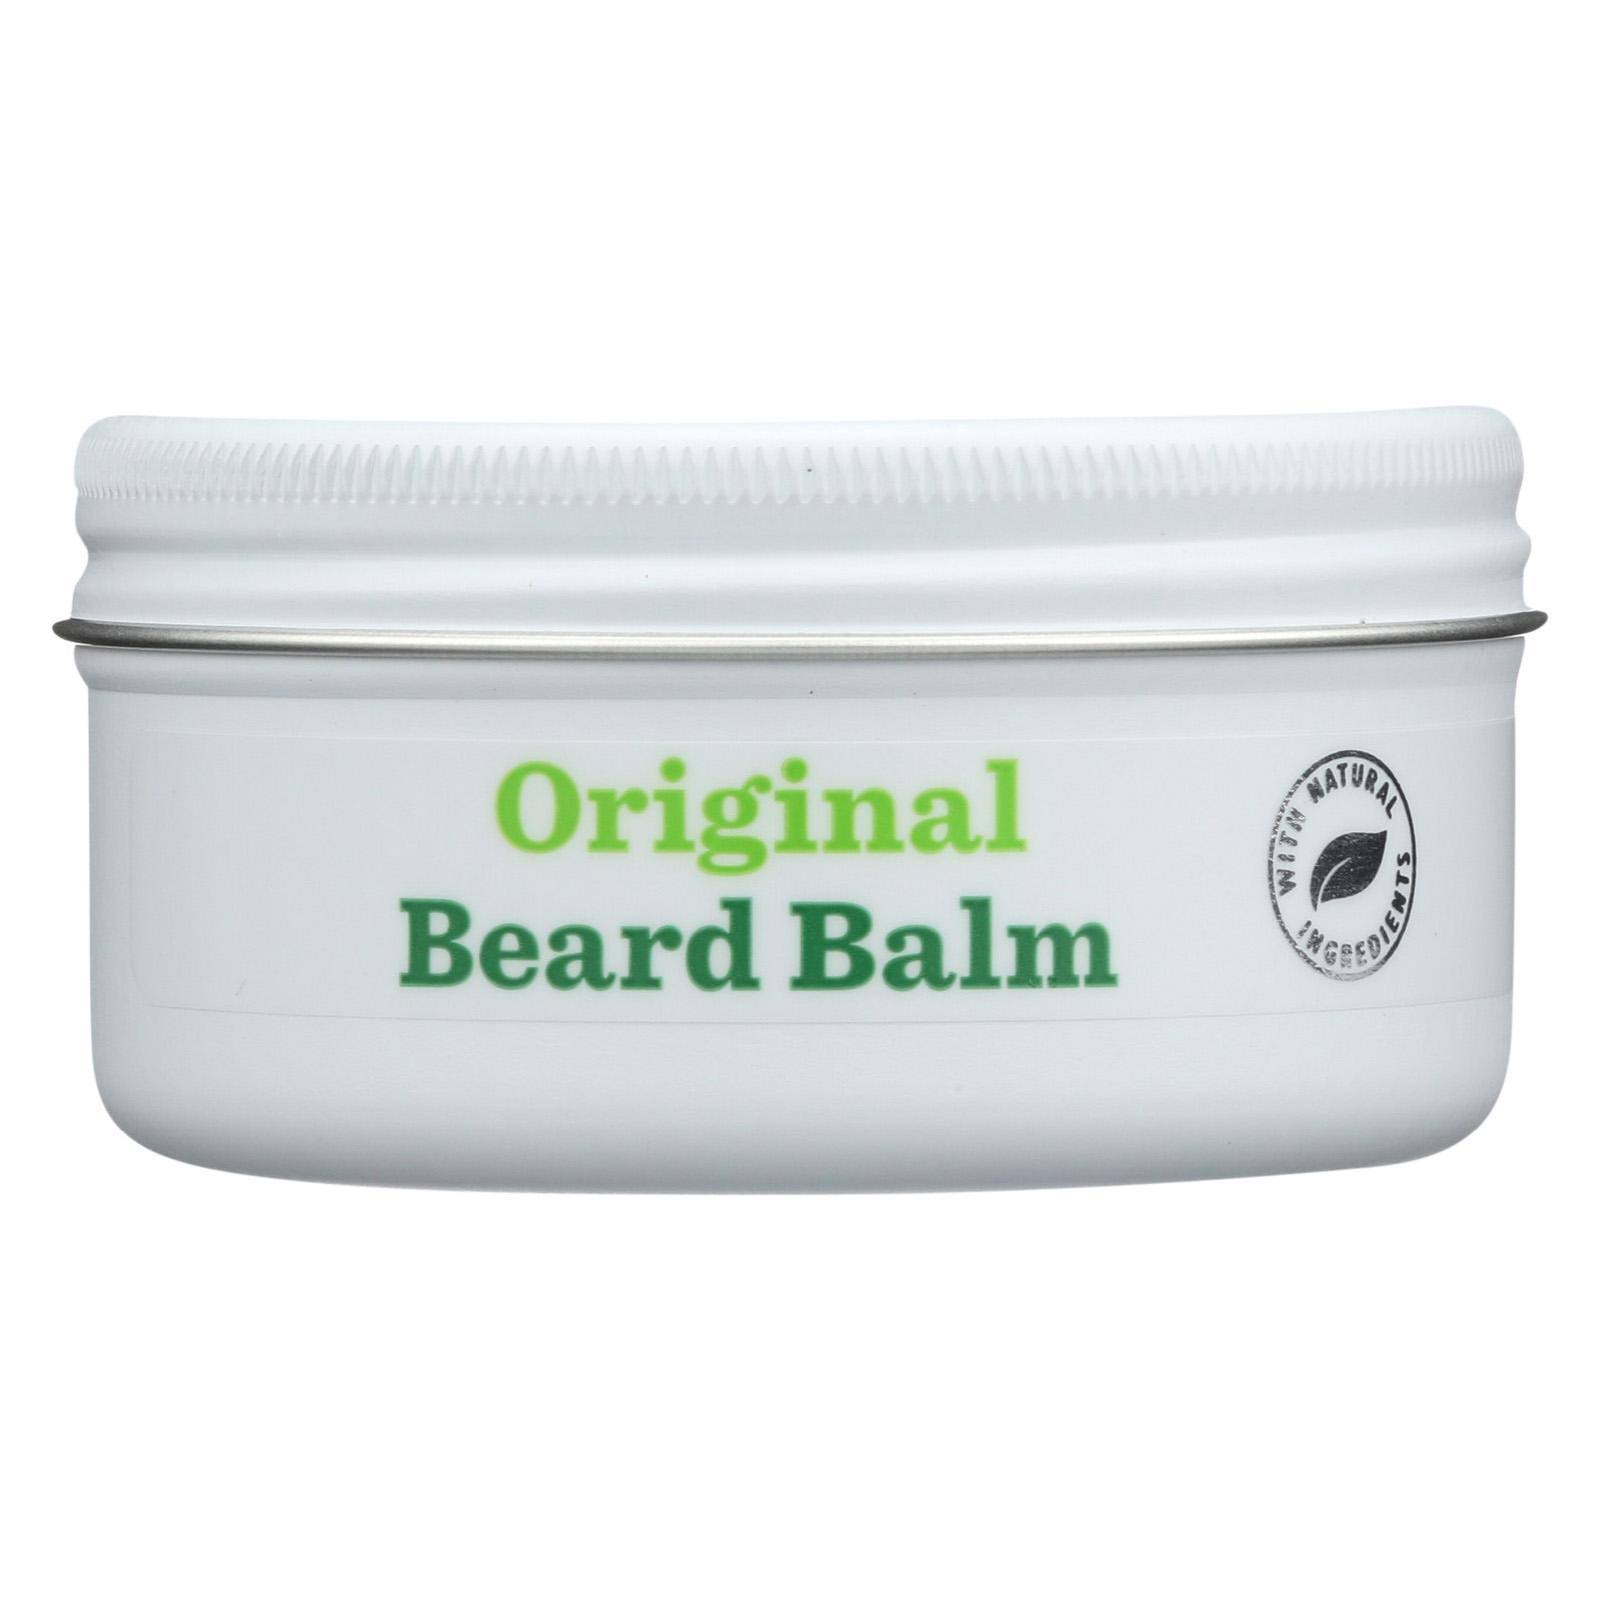 Bulldog Natural Skincare Beard Balm - Original, 2.5oz